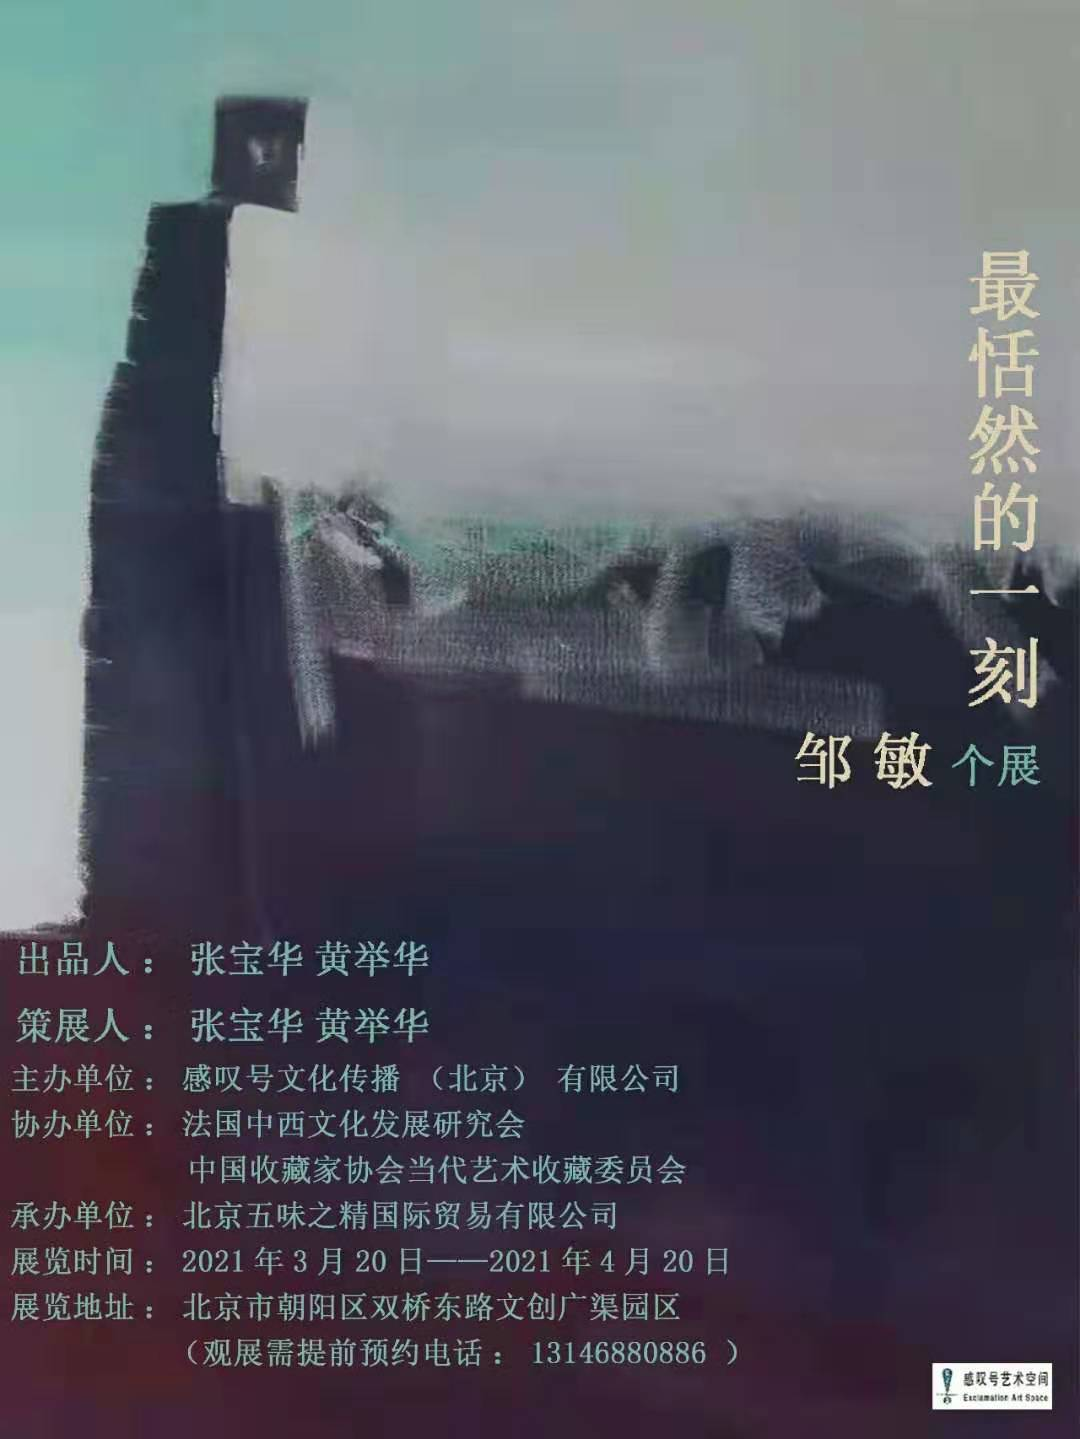 The Most Tranquil Moment - Min Zou Solo Exhibition